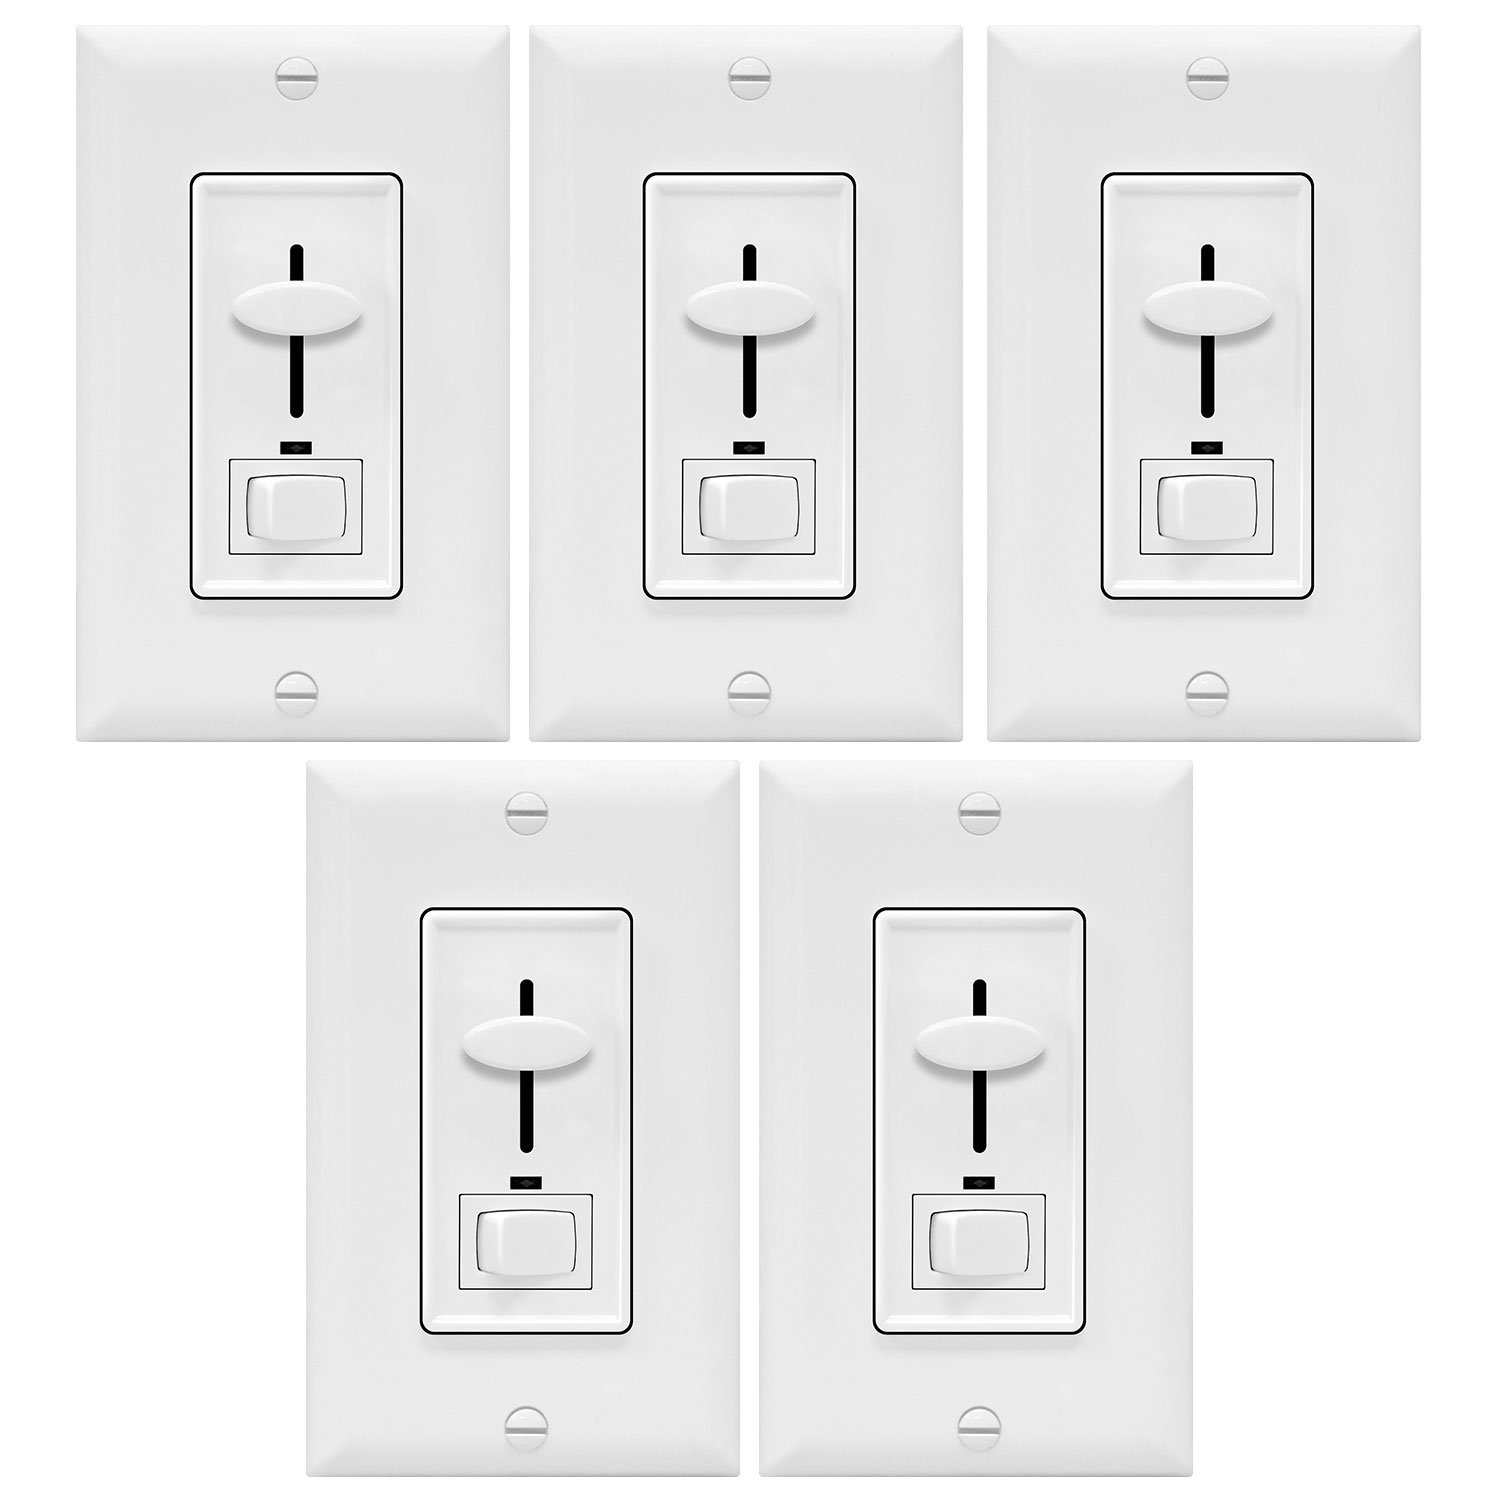 Enerlites Dimmer Light Switch 3-Way Multi Location for Dimmable Incandescent / Halogen Light Bulbs | In-Wall, Electrical Dimming Switch, ON/OFF Switch, Green LED Night Light | 700W, 120V, 60Hz, White